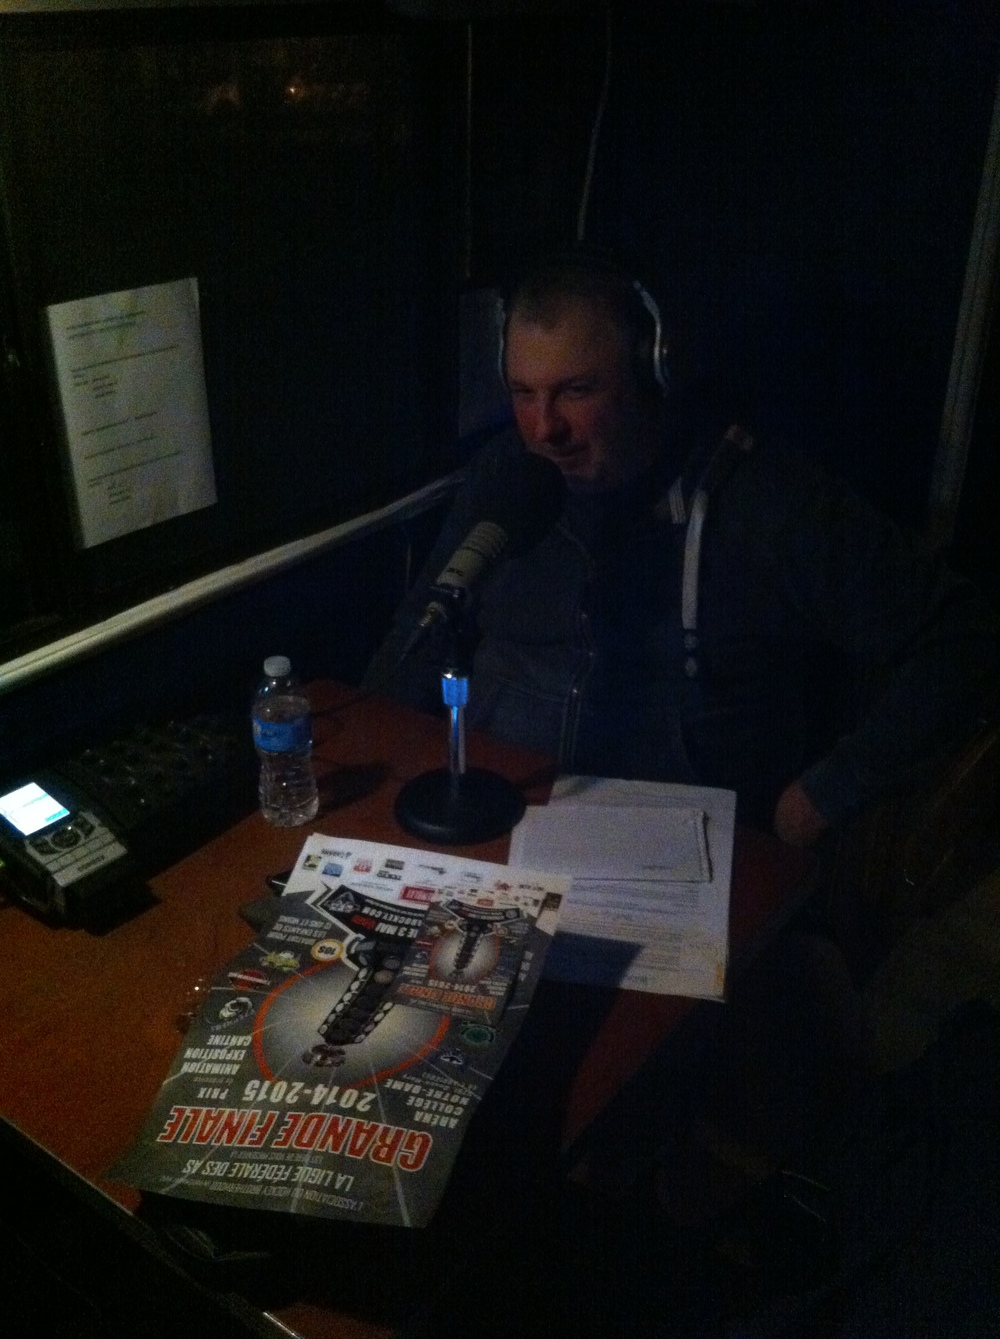 Jean-Charles Lajoie last monday during his sport tribune talking about our league and the cause we are supporting